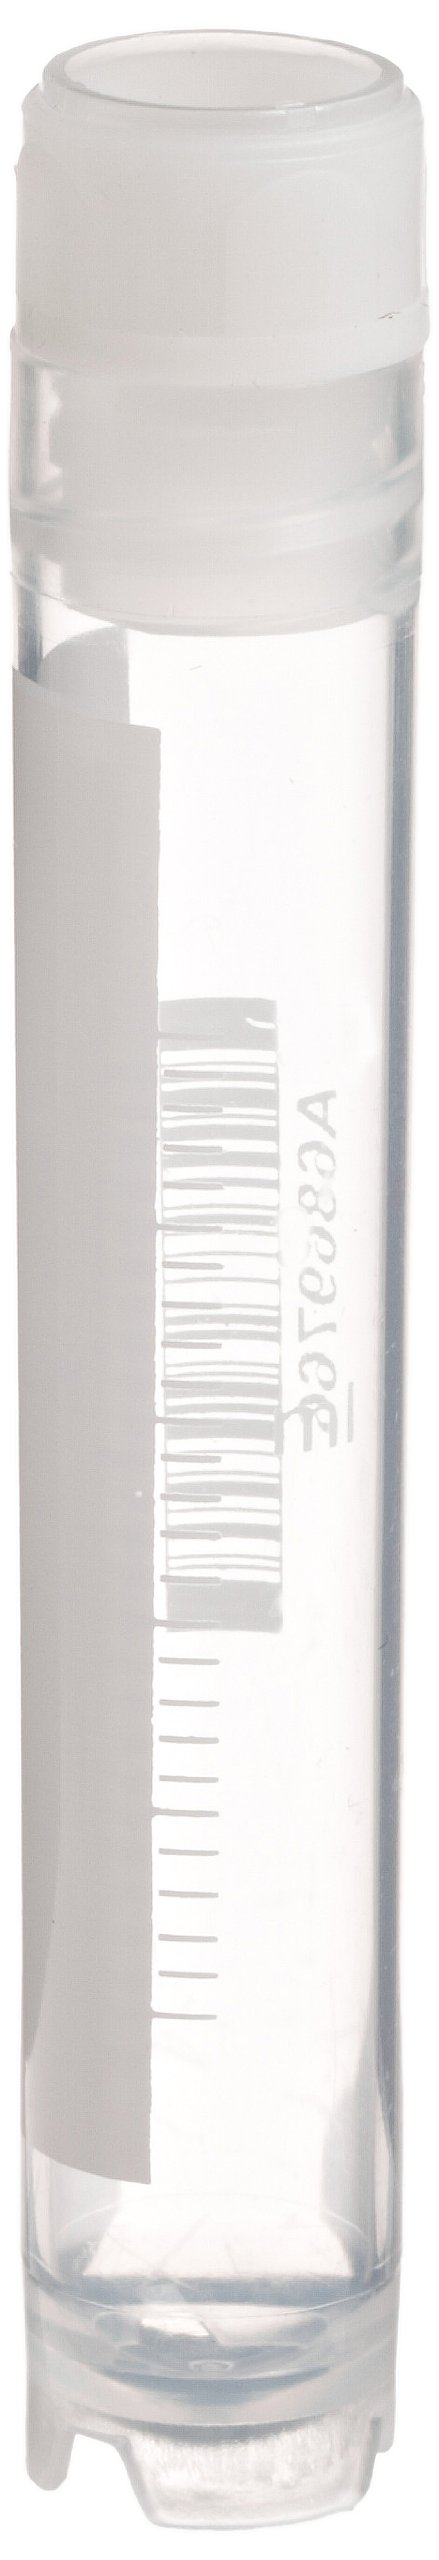 Globe Scientific CryoClear 3005 Polypropylene Barcoded Cryogenic Vial, 4mL Capacity, Sterile, Internal Threads, Attached Screwcap with Molded O-Ring, Round Bottom, Self-Standing (Case of 500) by Globe Scientific (Image #5)